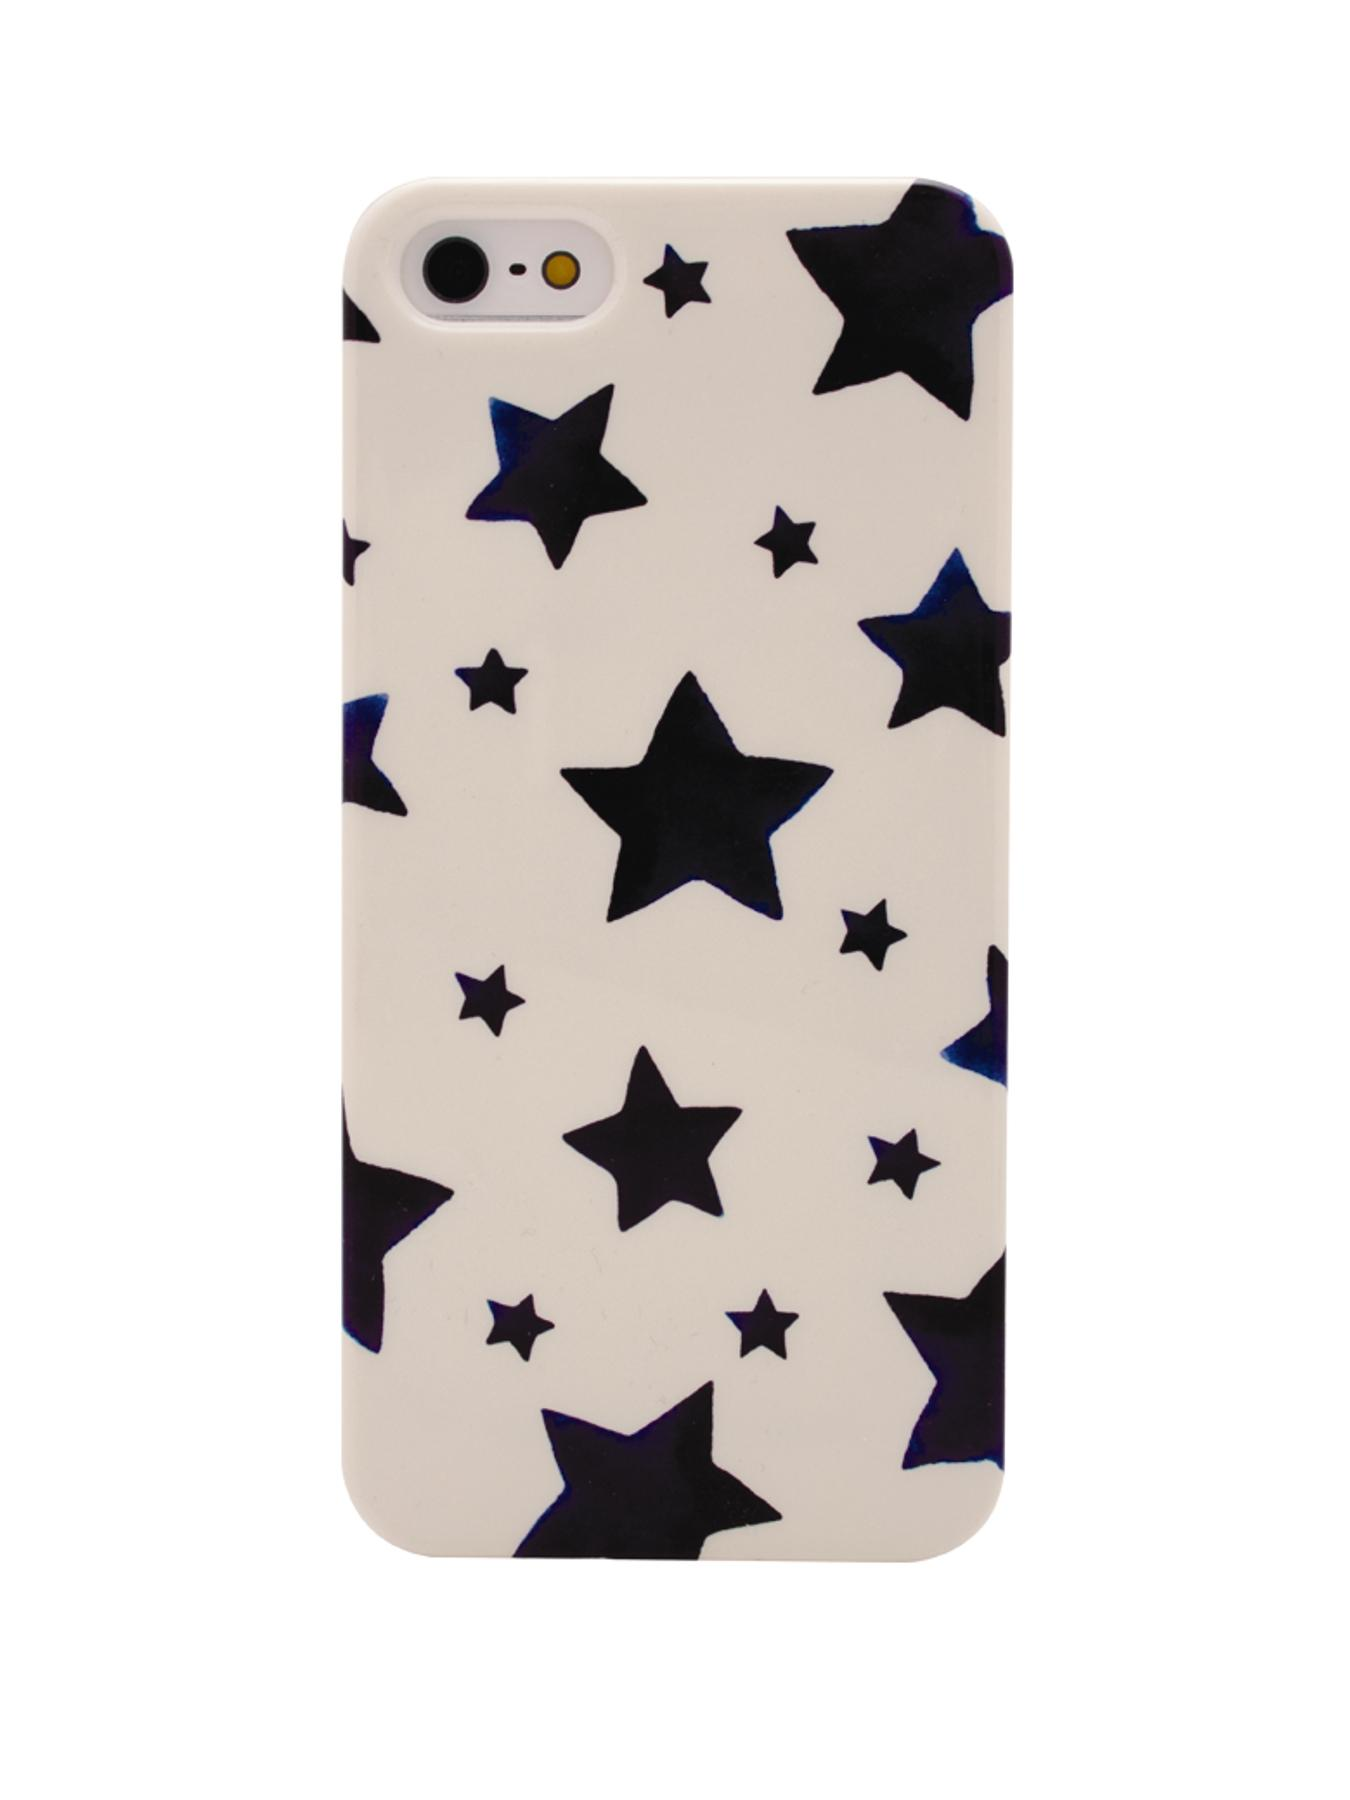 Starry Skies iPhone 5/5S Case